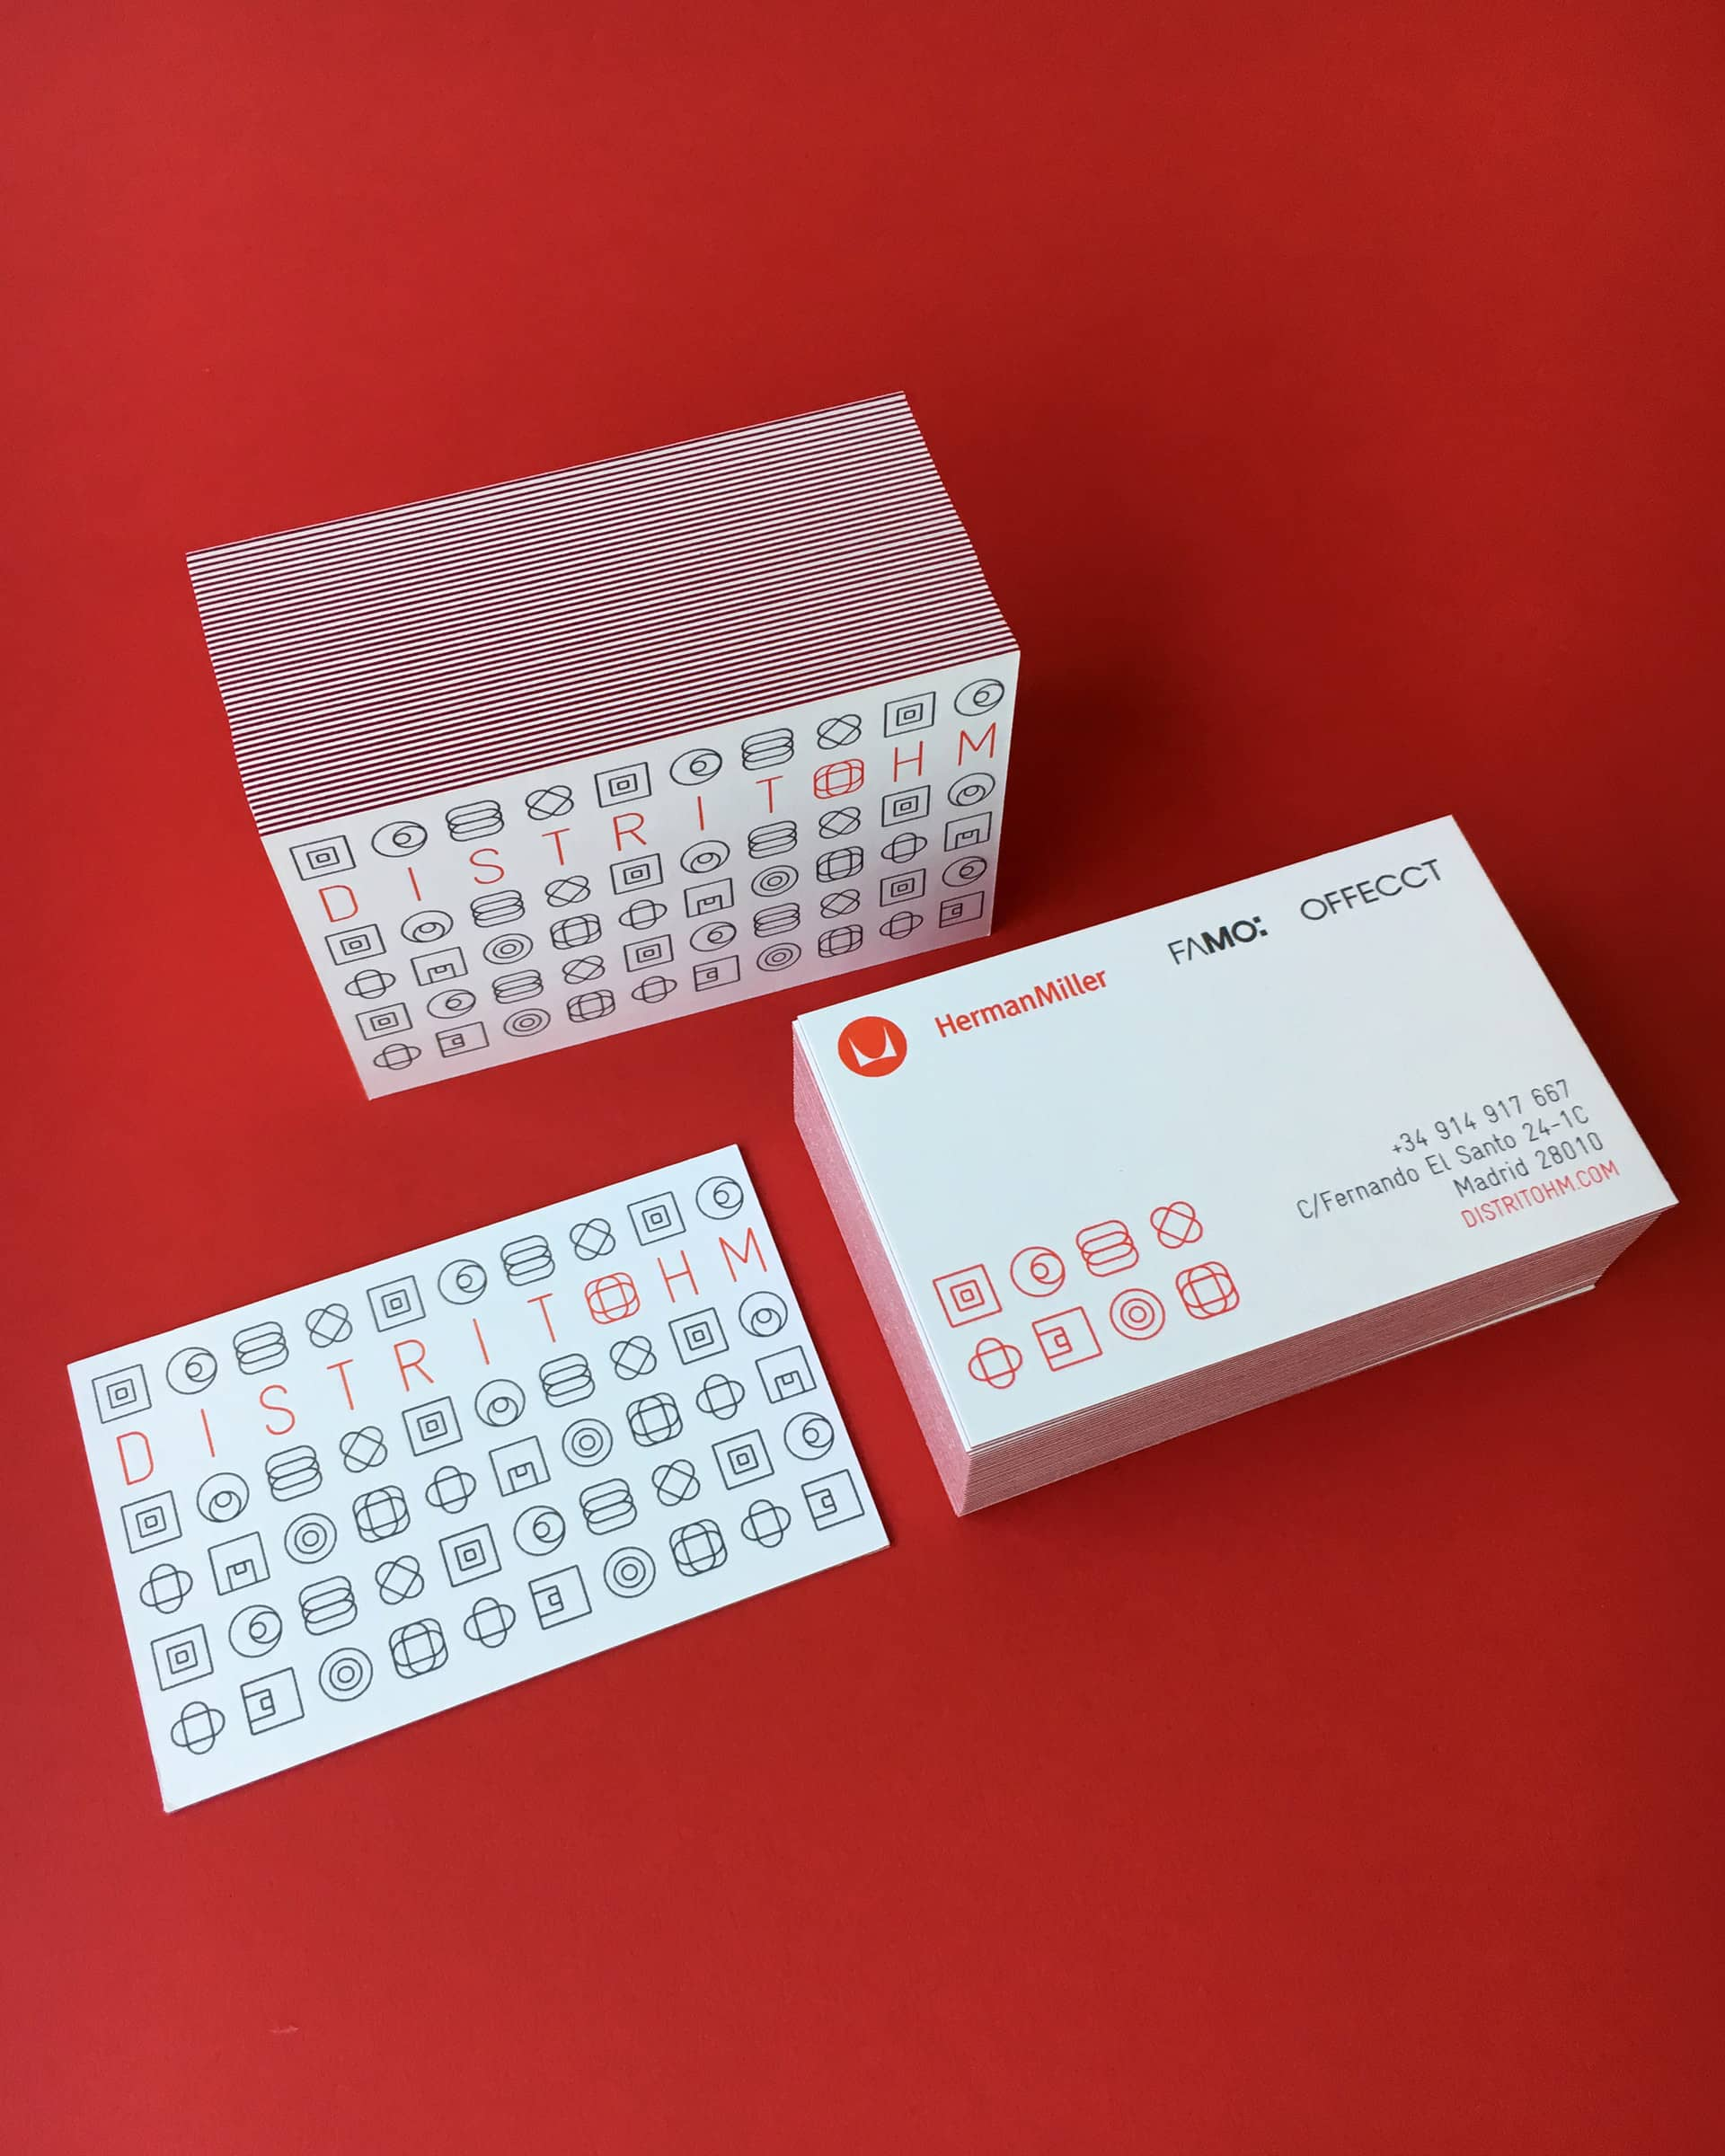 Distrito HM double-sided business cards design